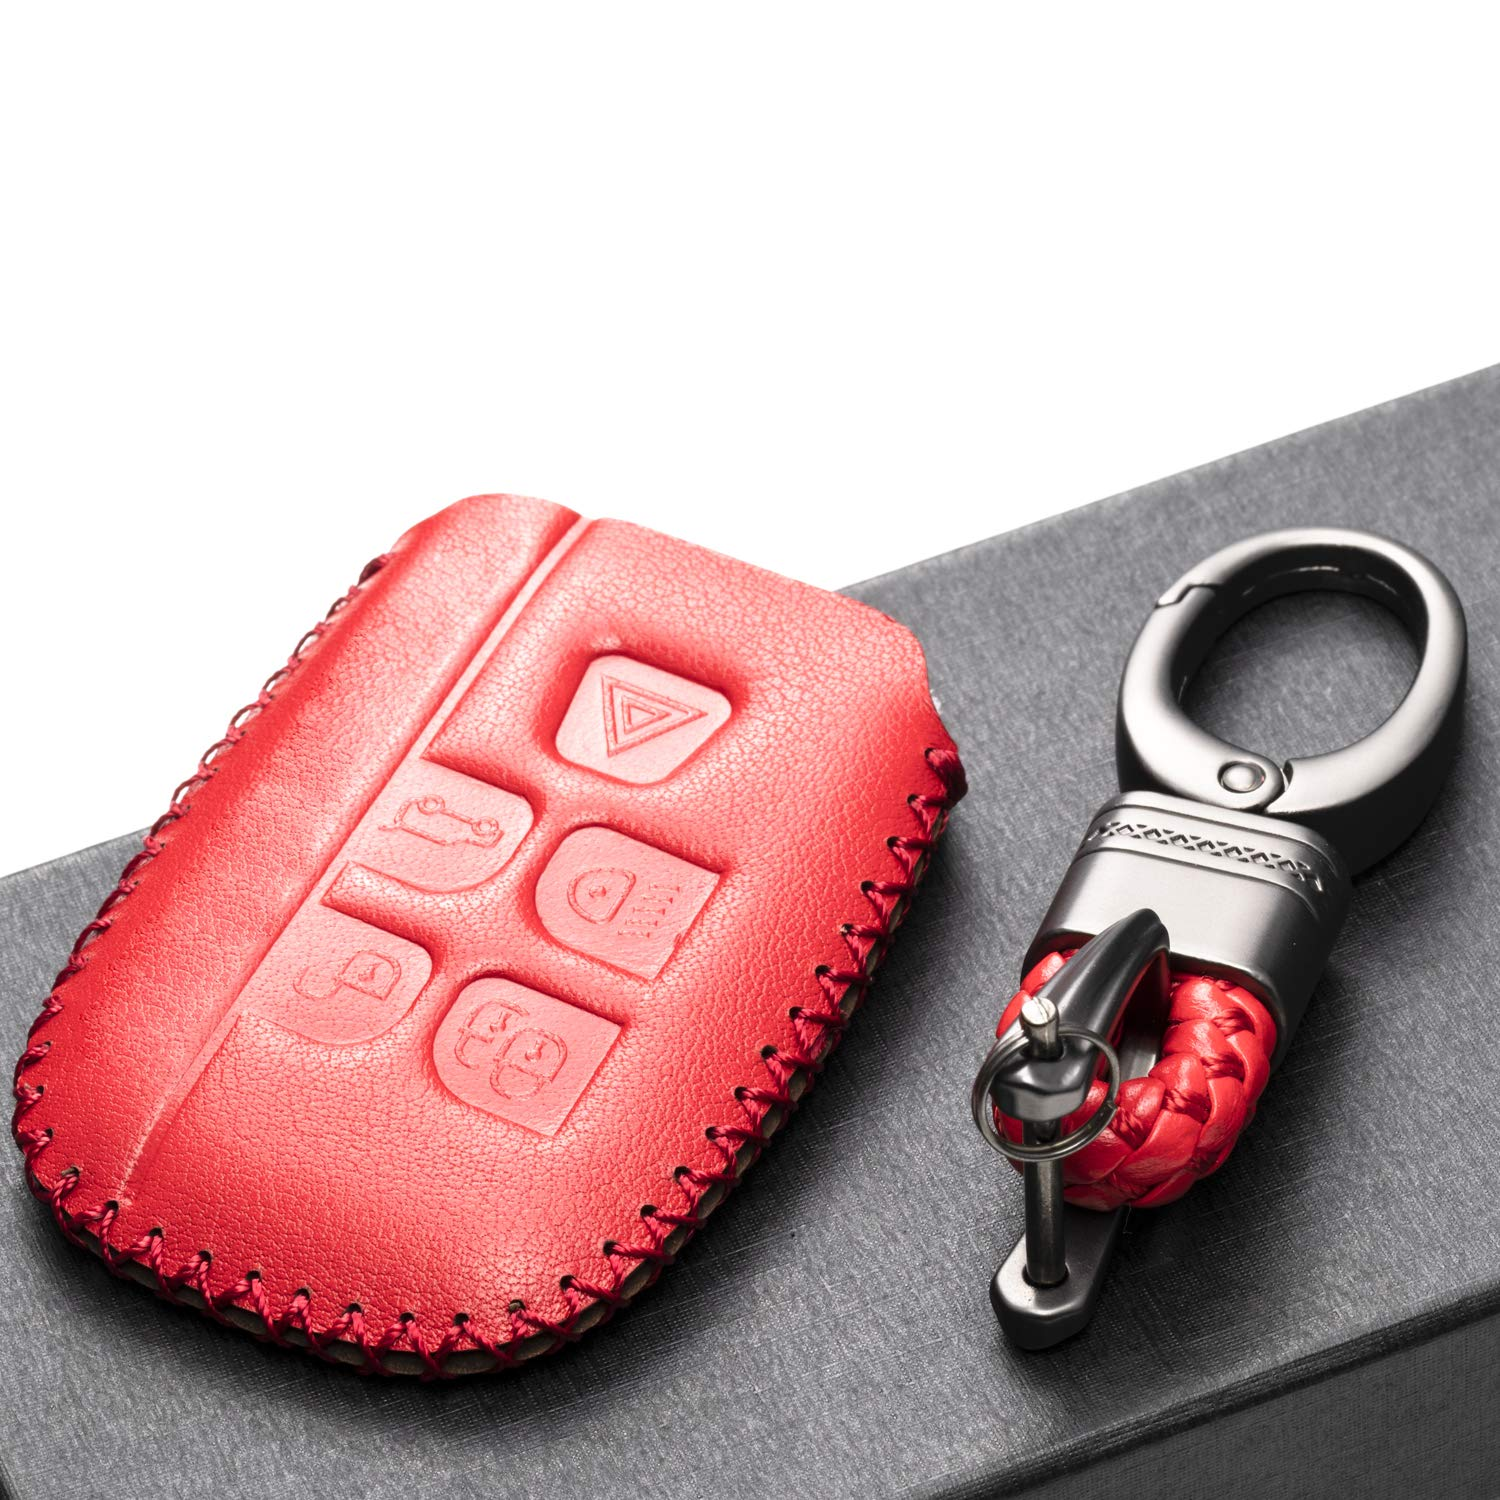 Vitodeco Genuine Leather Keyless Smart Key Fob Case Cover with Key Chain for Land Rover Defender Discovery Sport LR2 LR4 Range Rover Sport Black